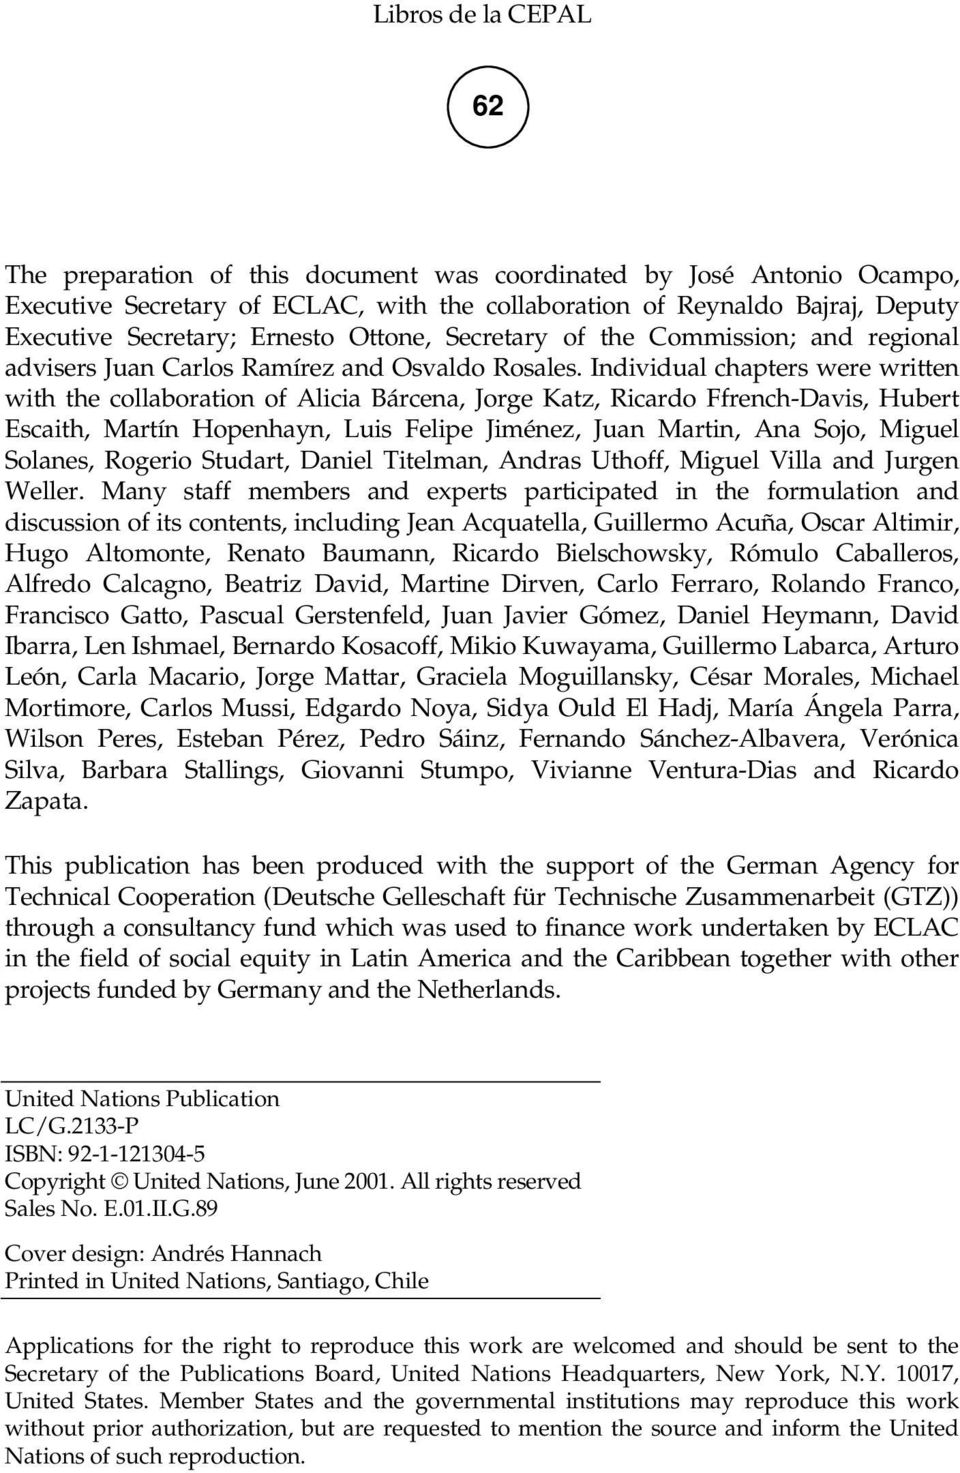 Individual chapters were written with the collaboration of Alicia Bárcena, Jorge Katz, Ricardo Ffrench-Davis, Hubert Escaith, Martín Hopenhayn, Luis Felipe Jiménez, Juan Martin, Ana Sojo, Miguel